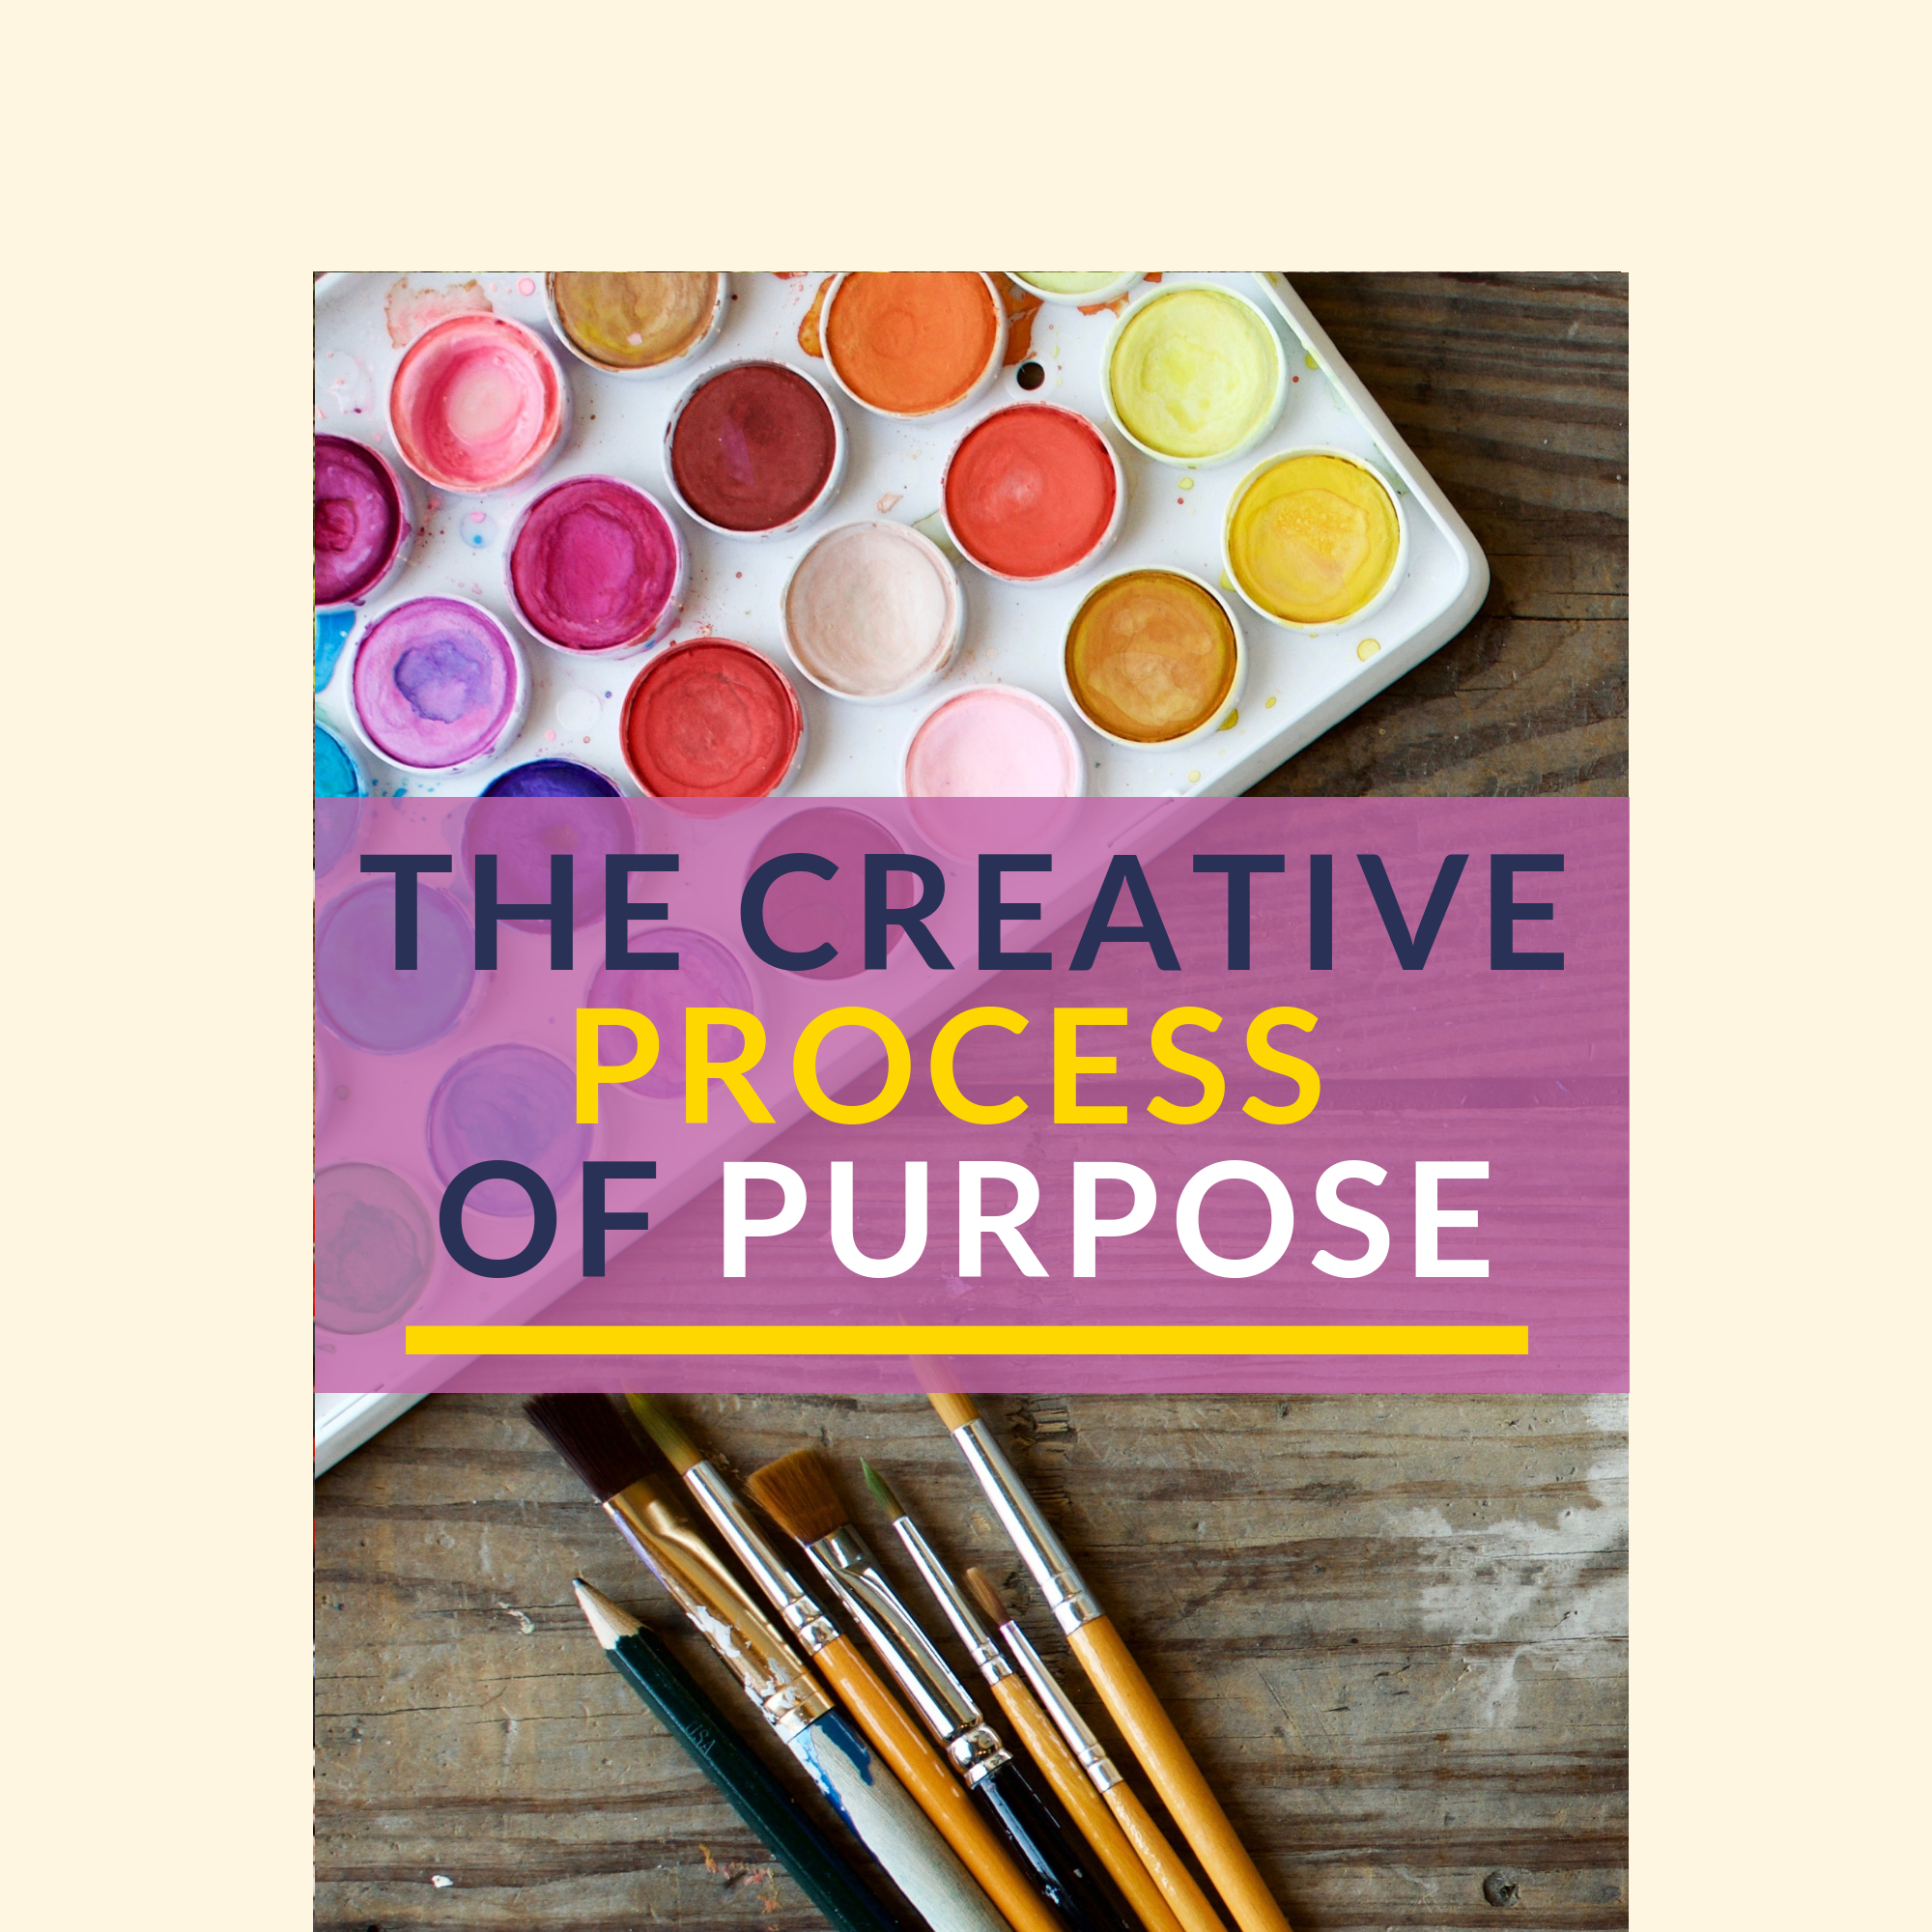 The Creative Process of Purpose